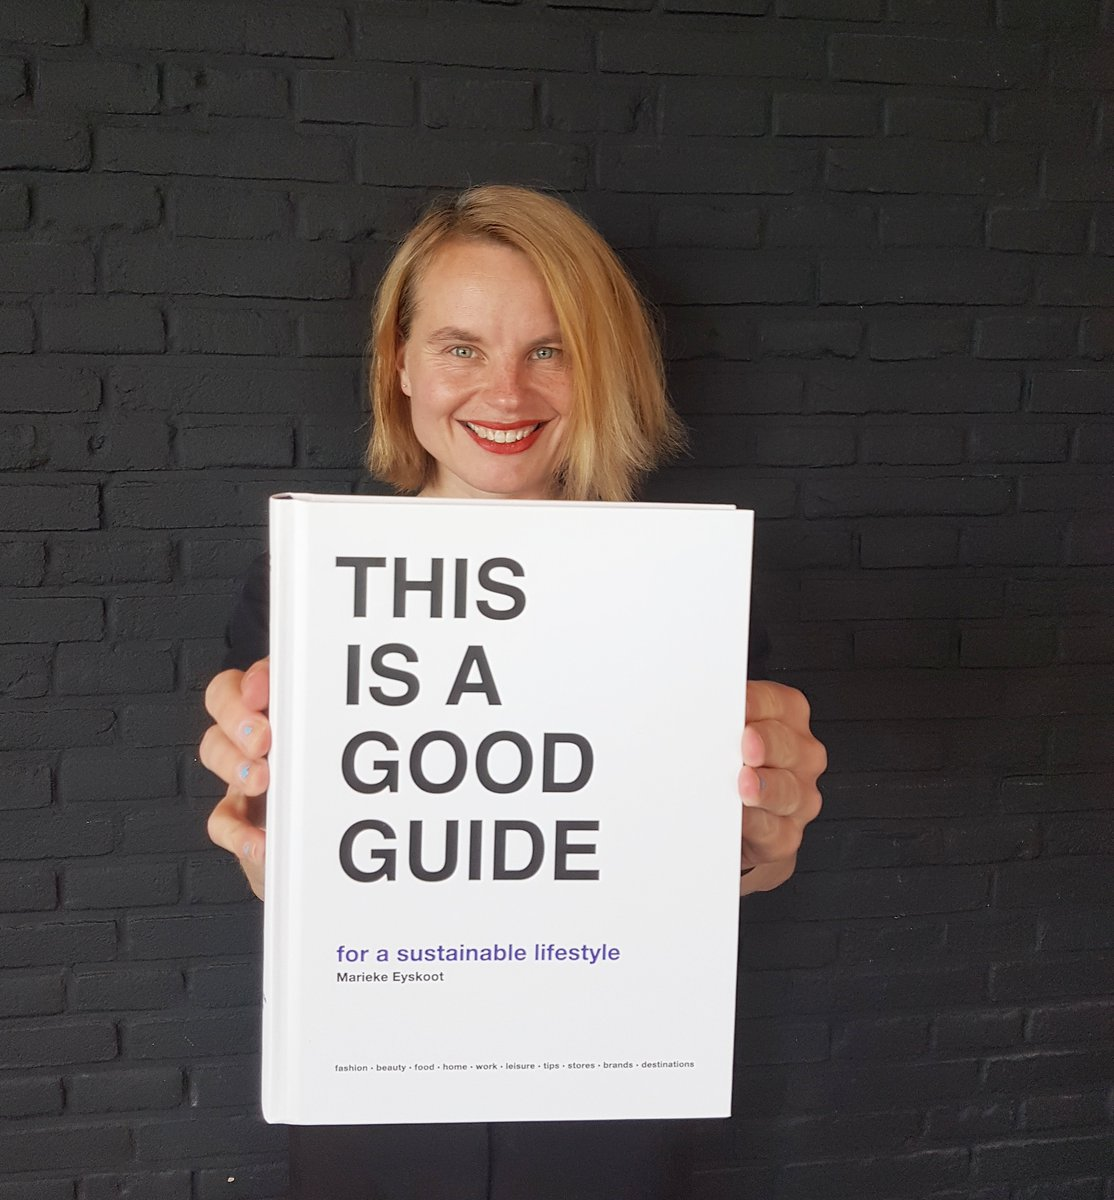 This is a good guide for a sustainable lifestyle by Marieke Eyskoot.jpg